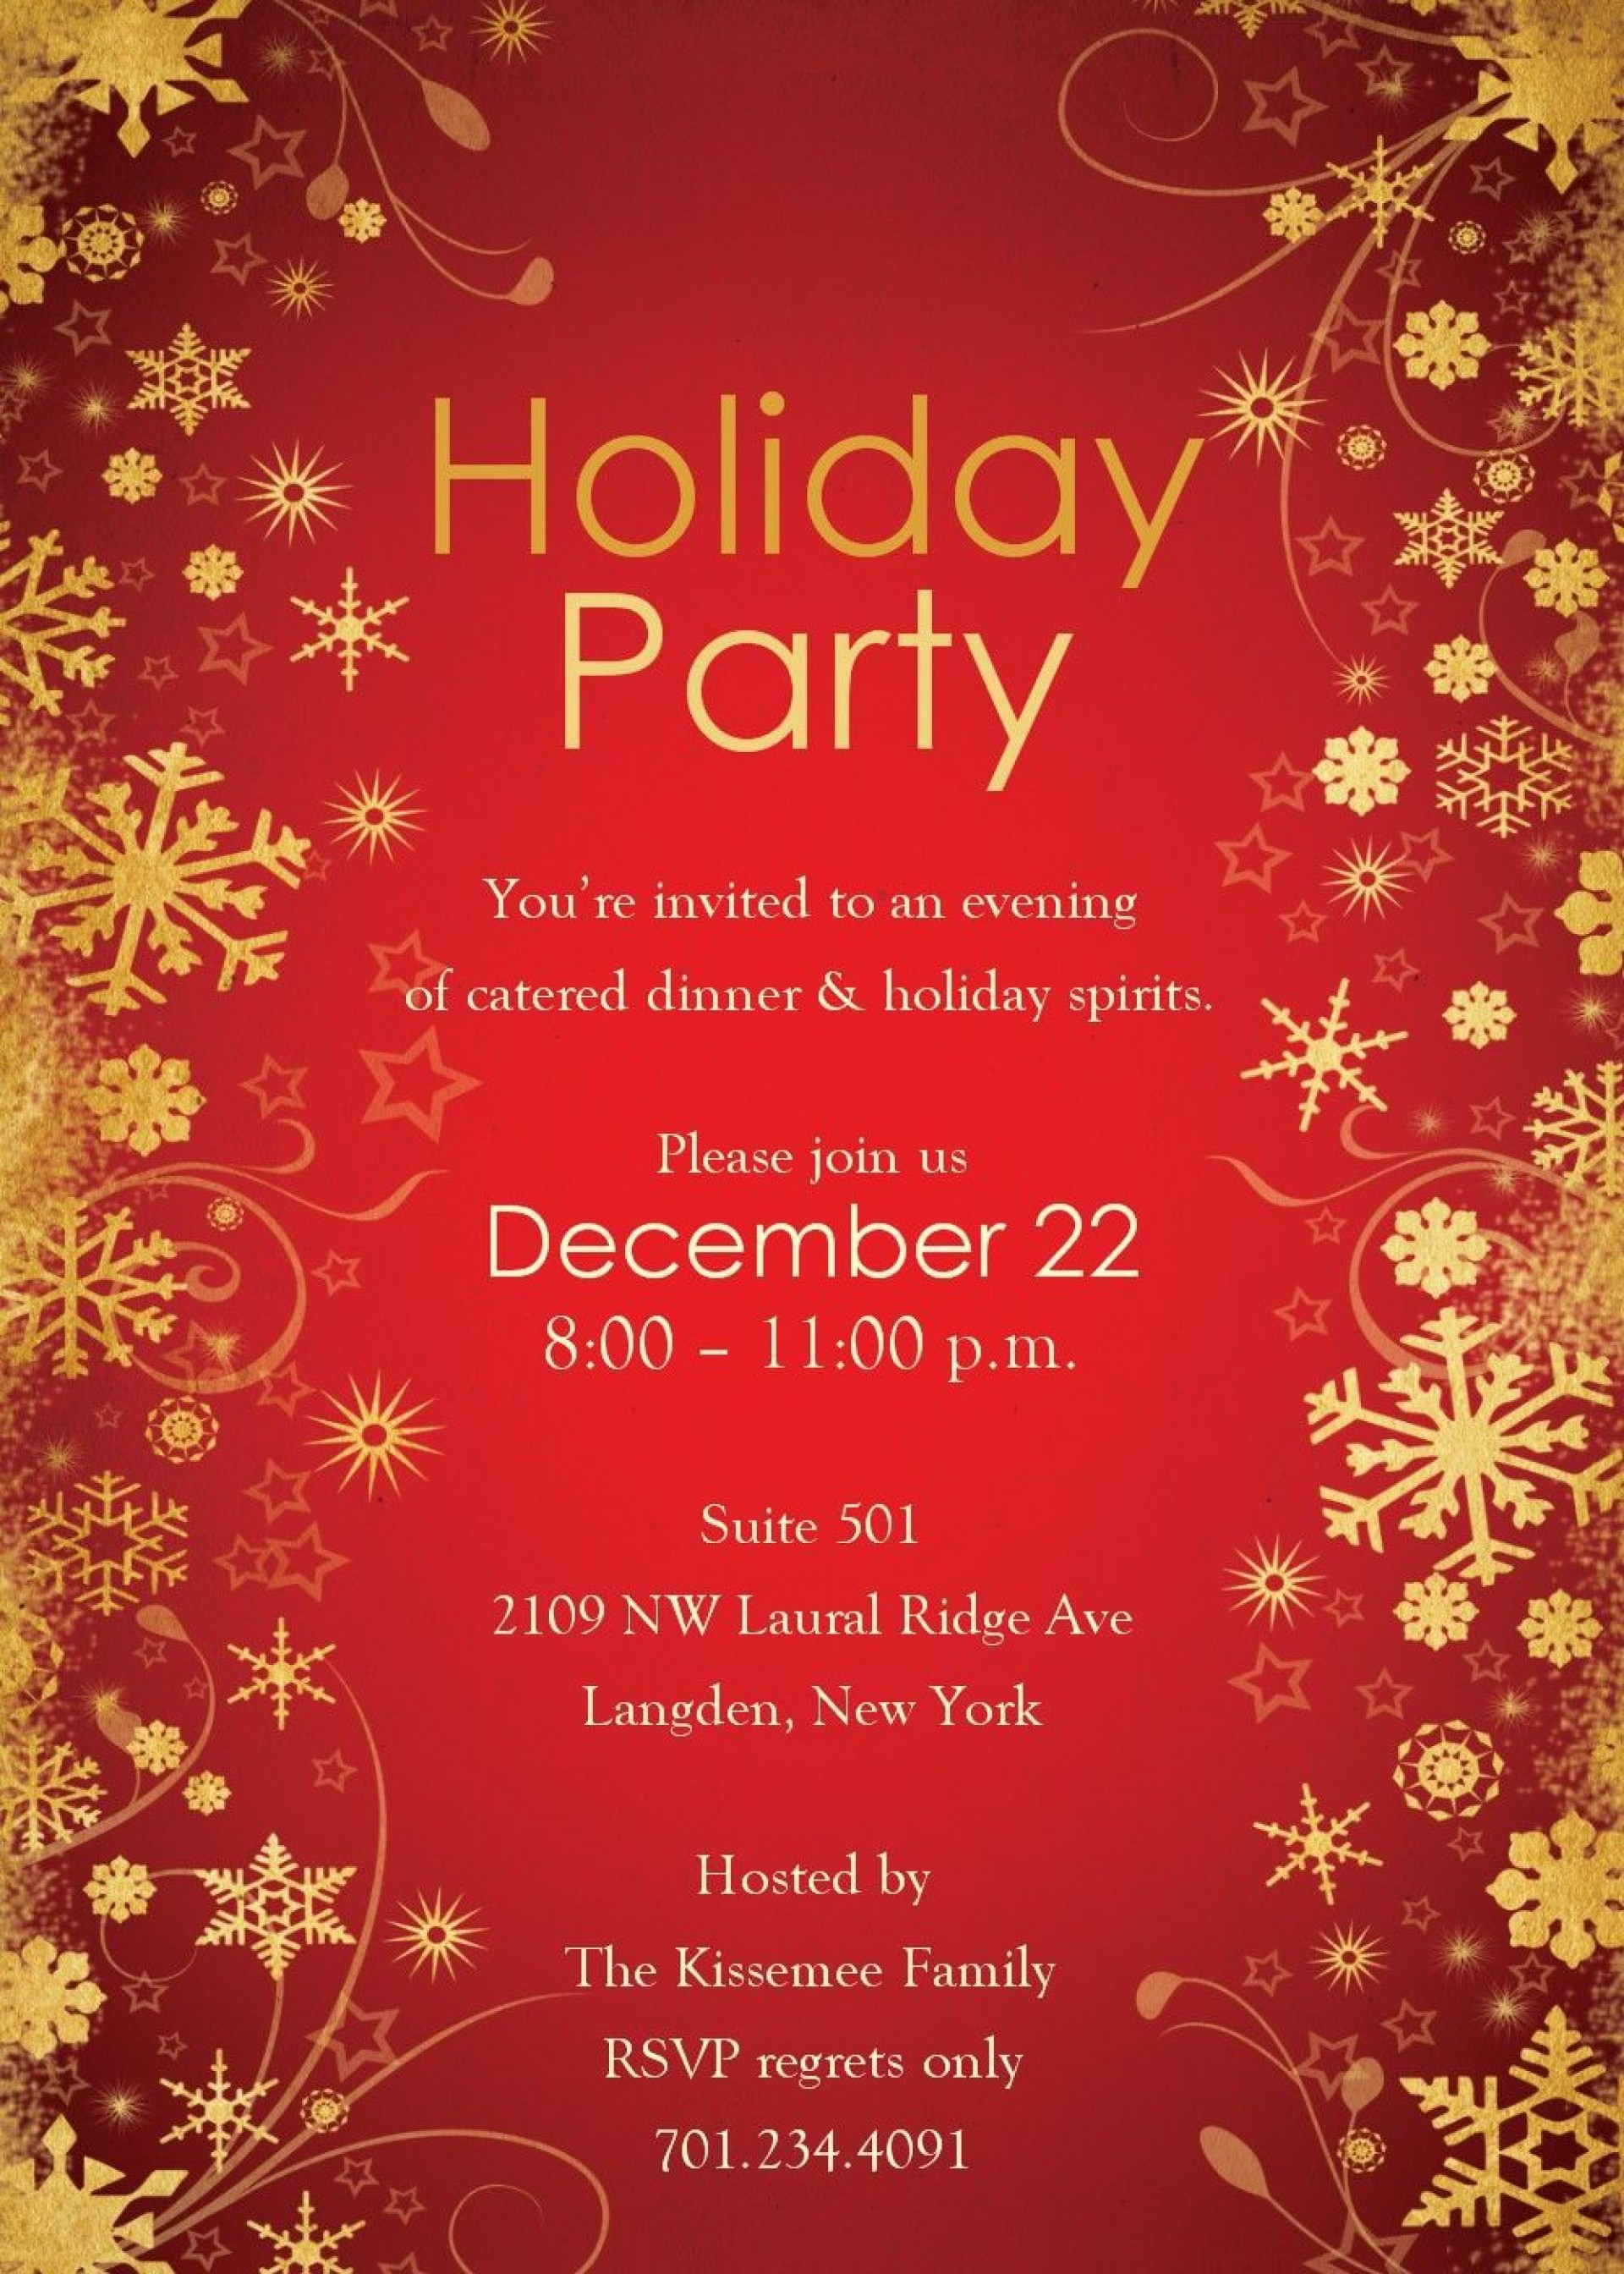 007 Imposing Free Christma Invitation Template Word High Def  Holiday Party Editable1920